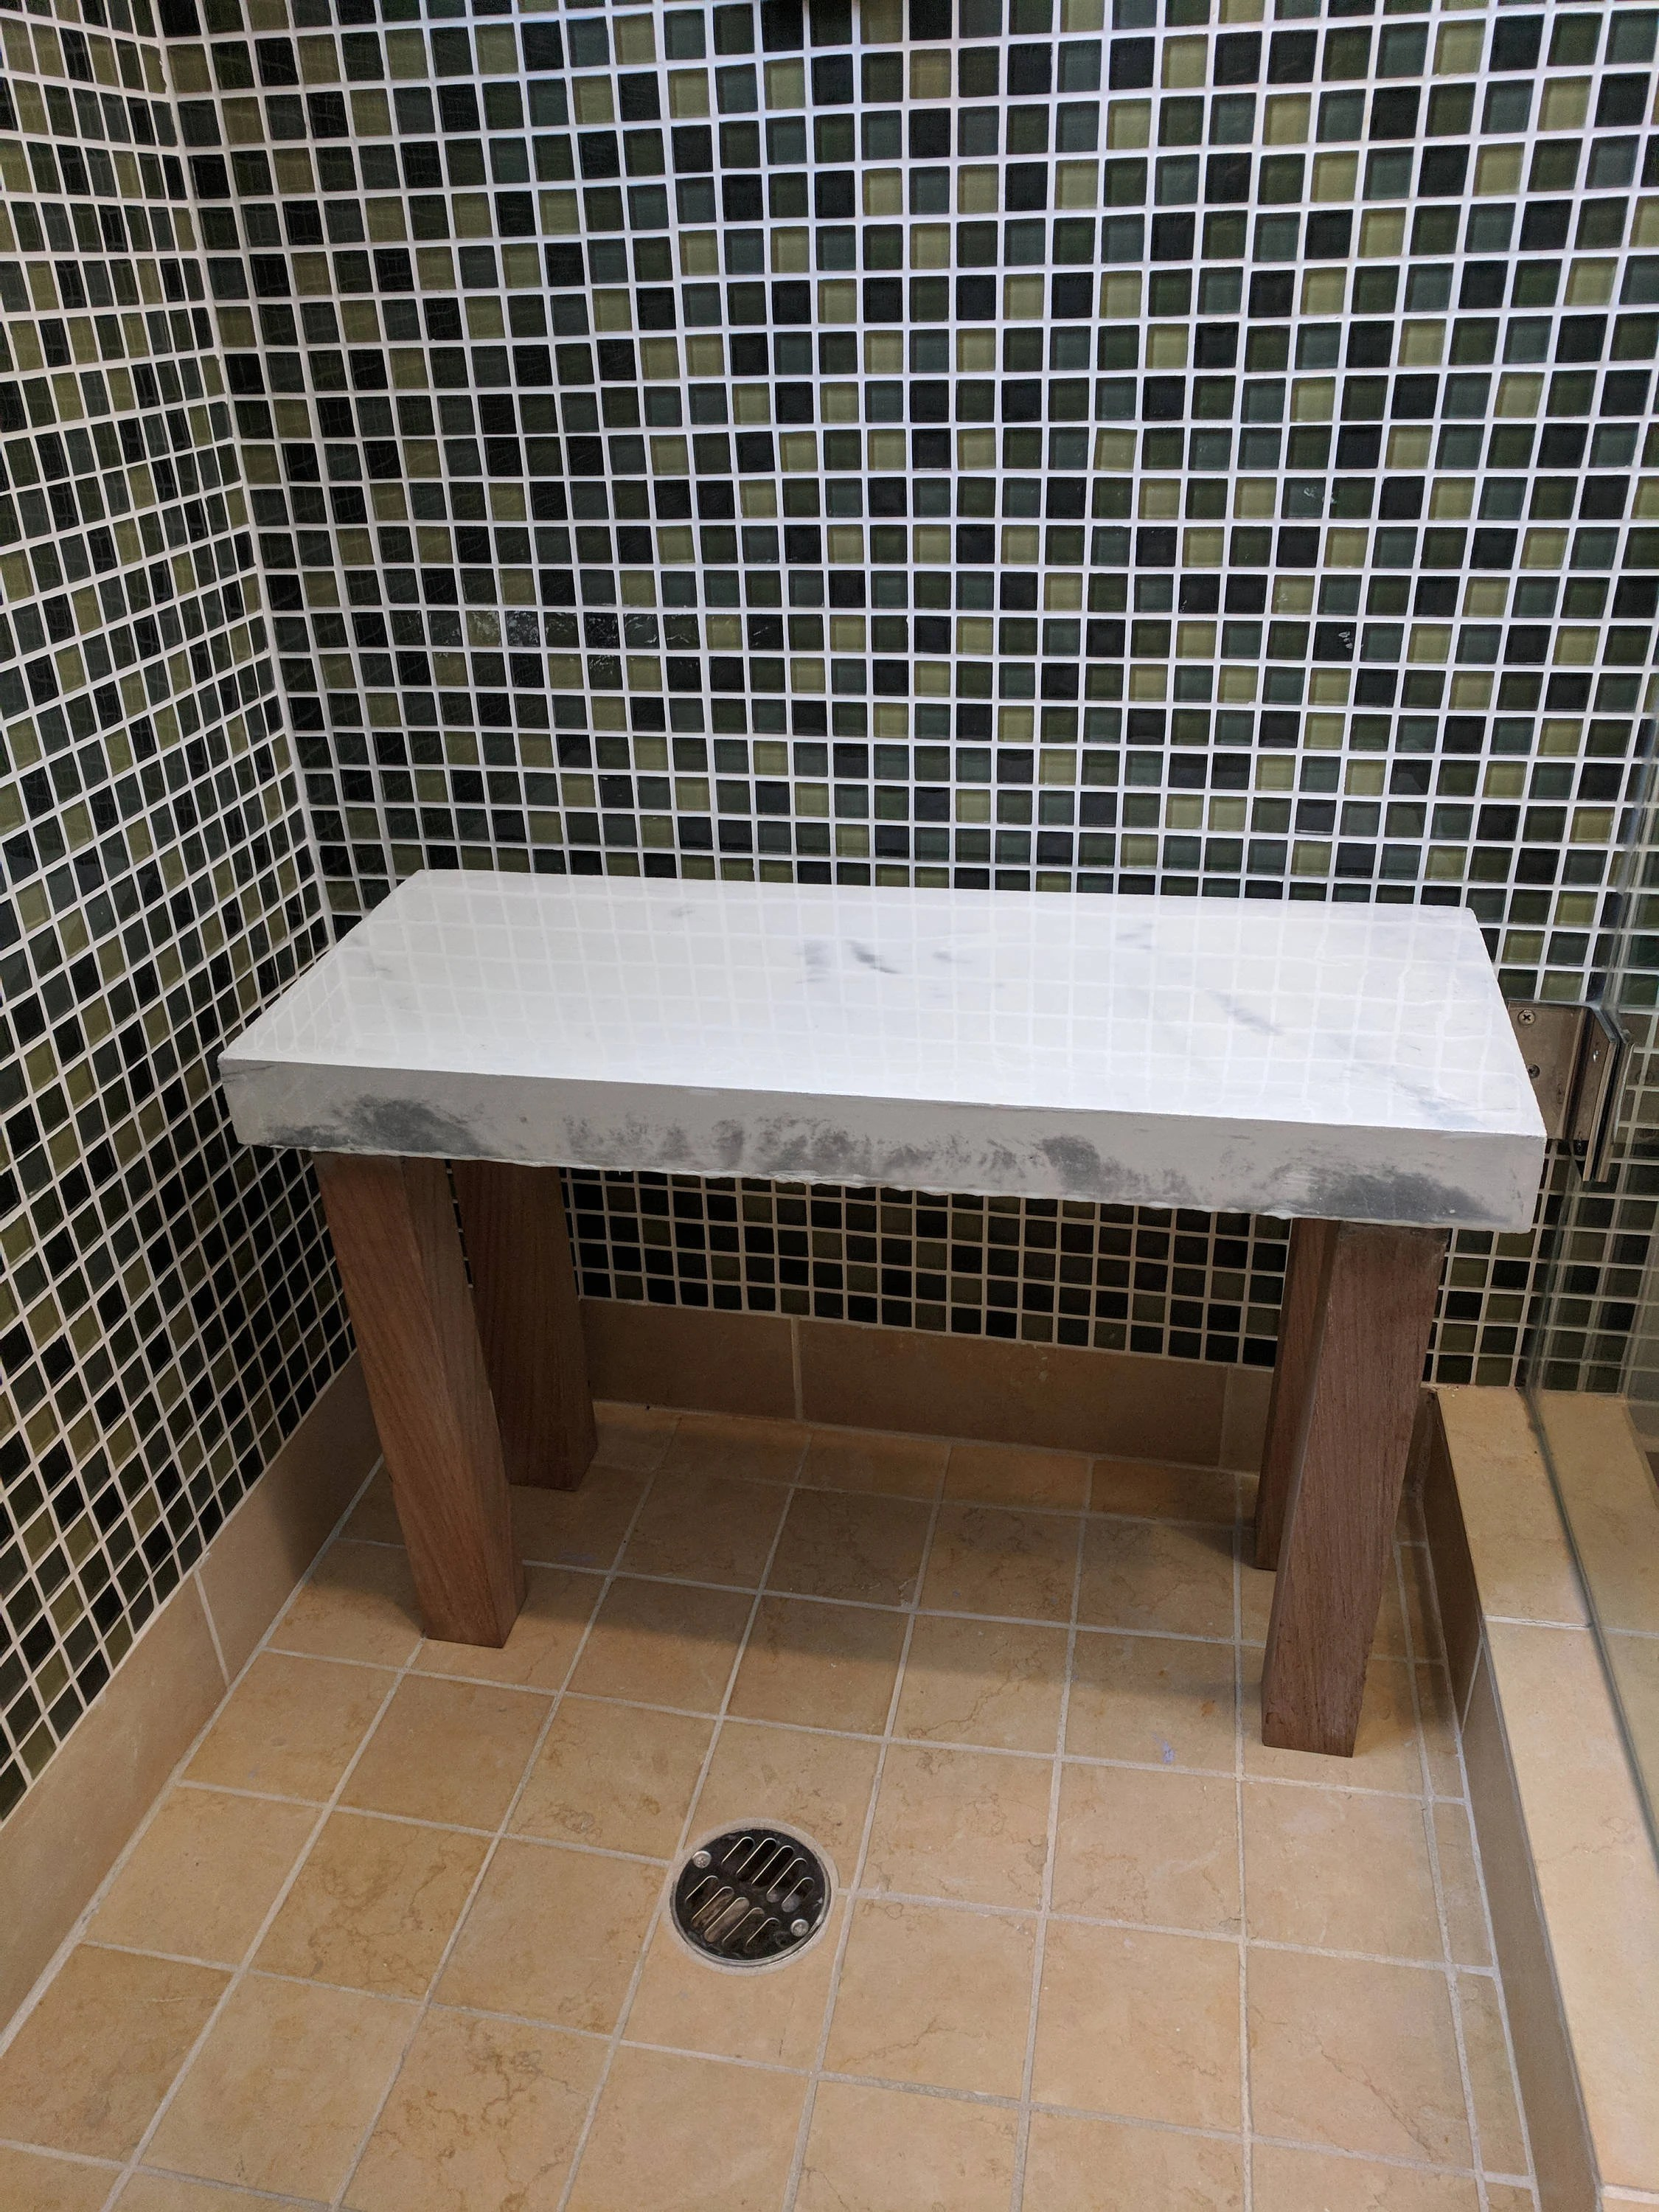 Custom Concrete Shower Bench With Teak Legs Size And Color